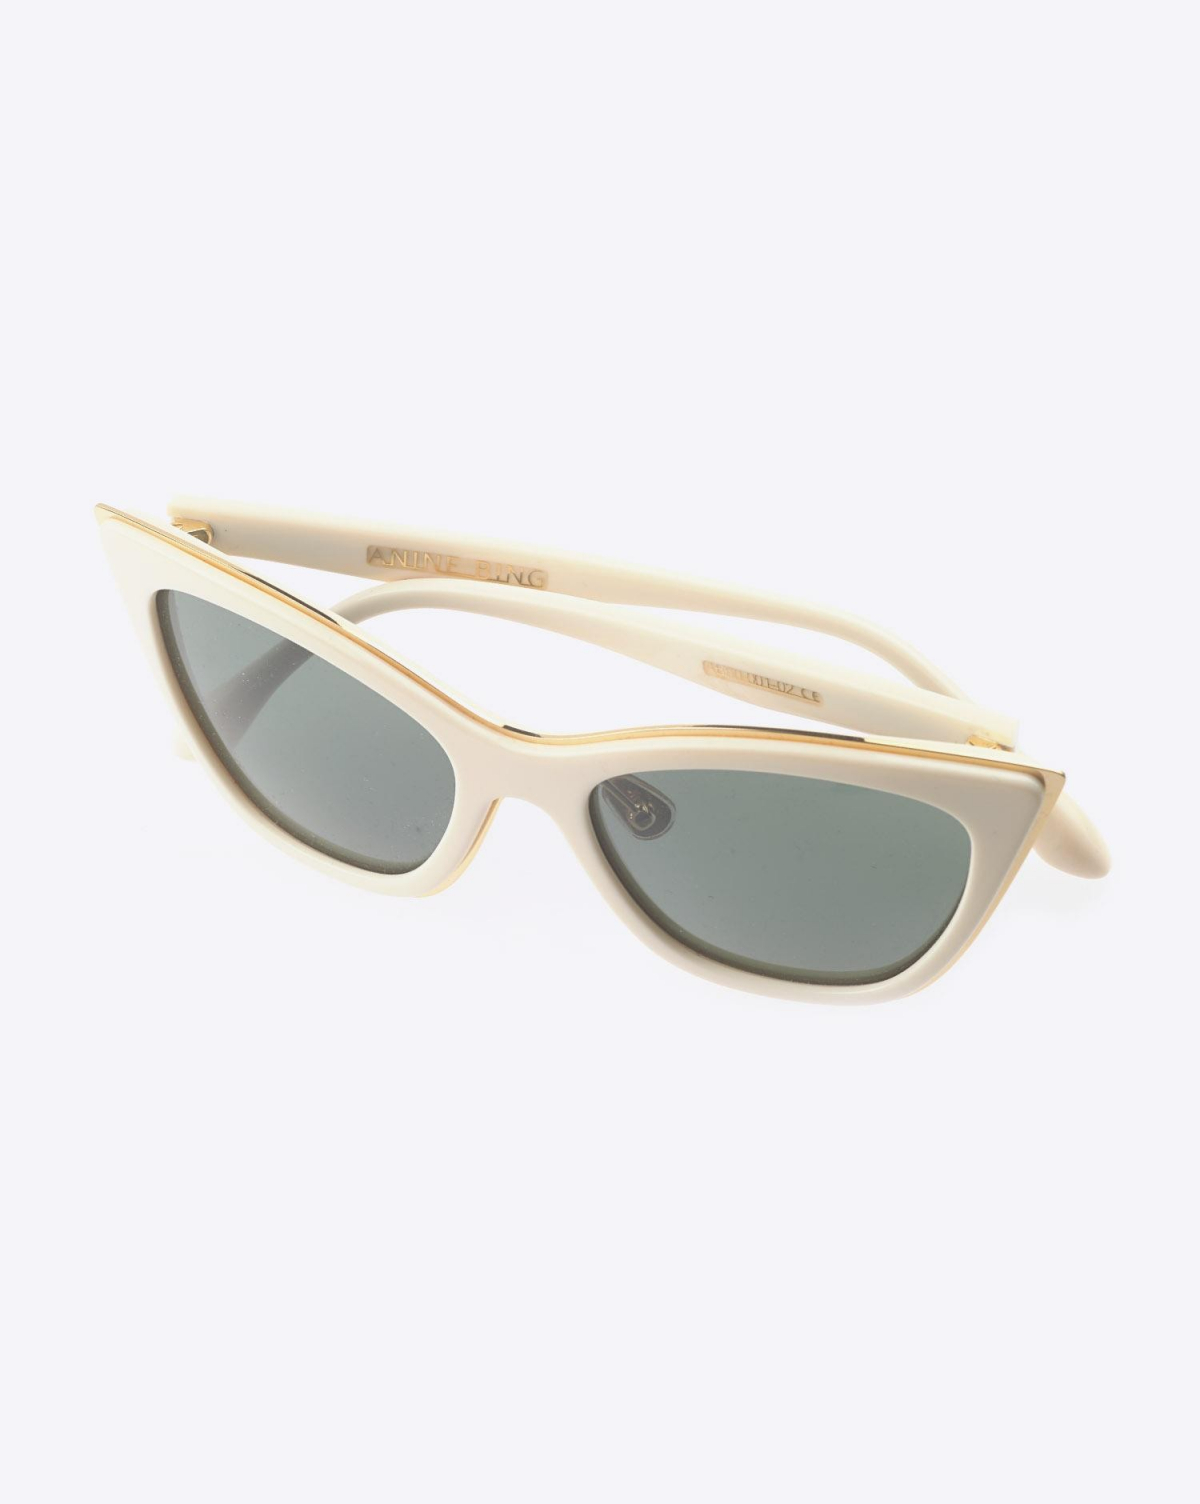 Anine Bing Echo Park Sunglasses - Bone Bone